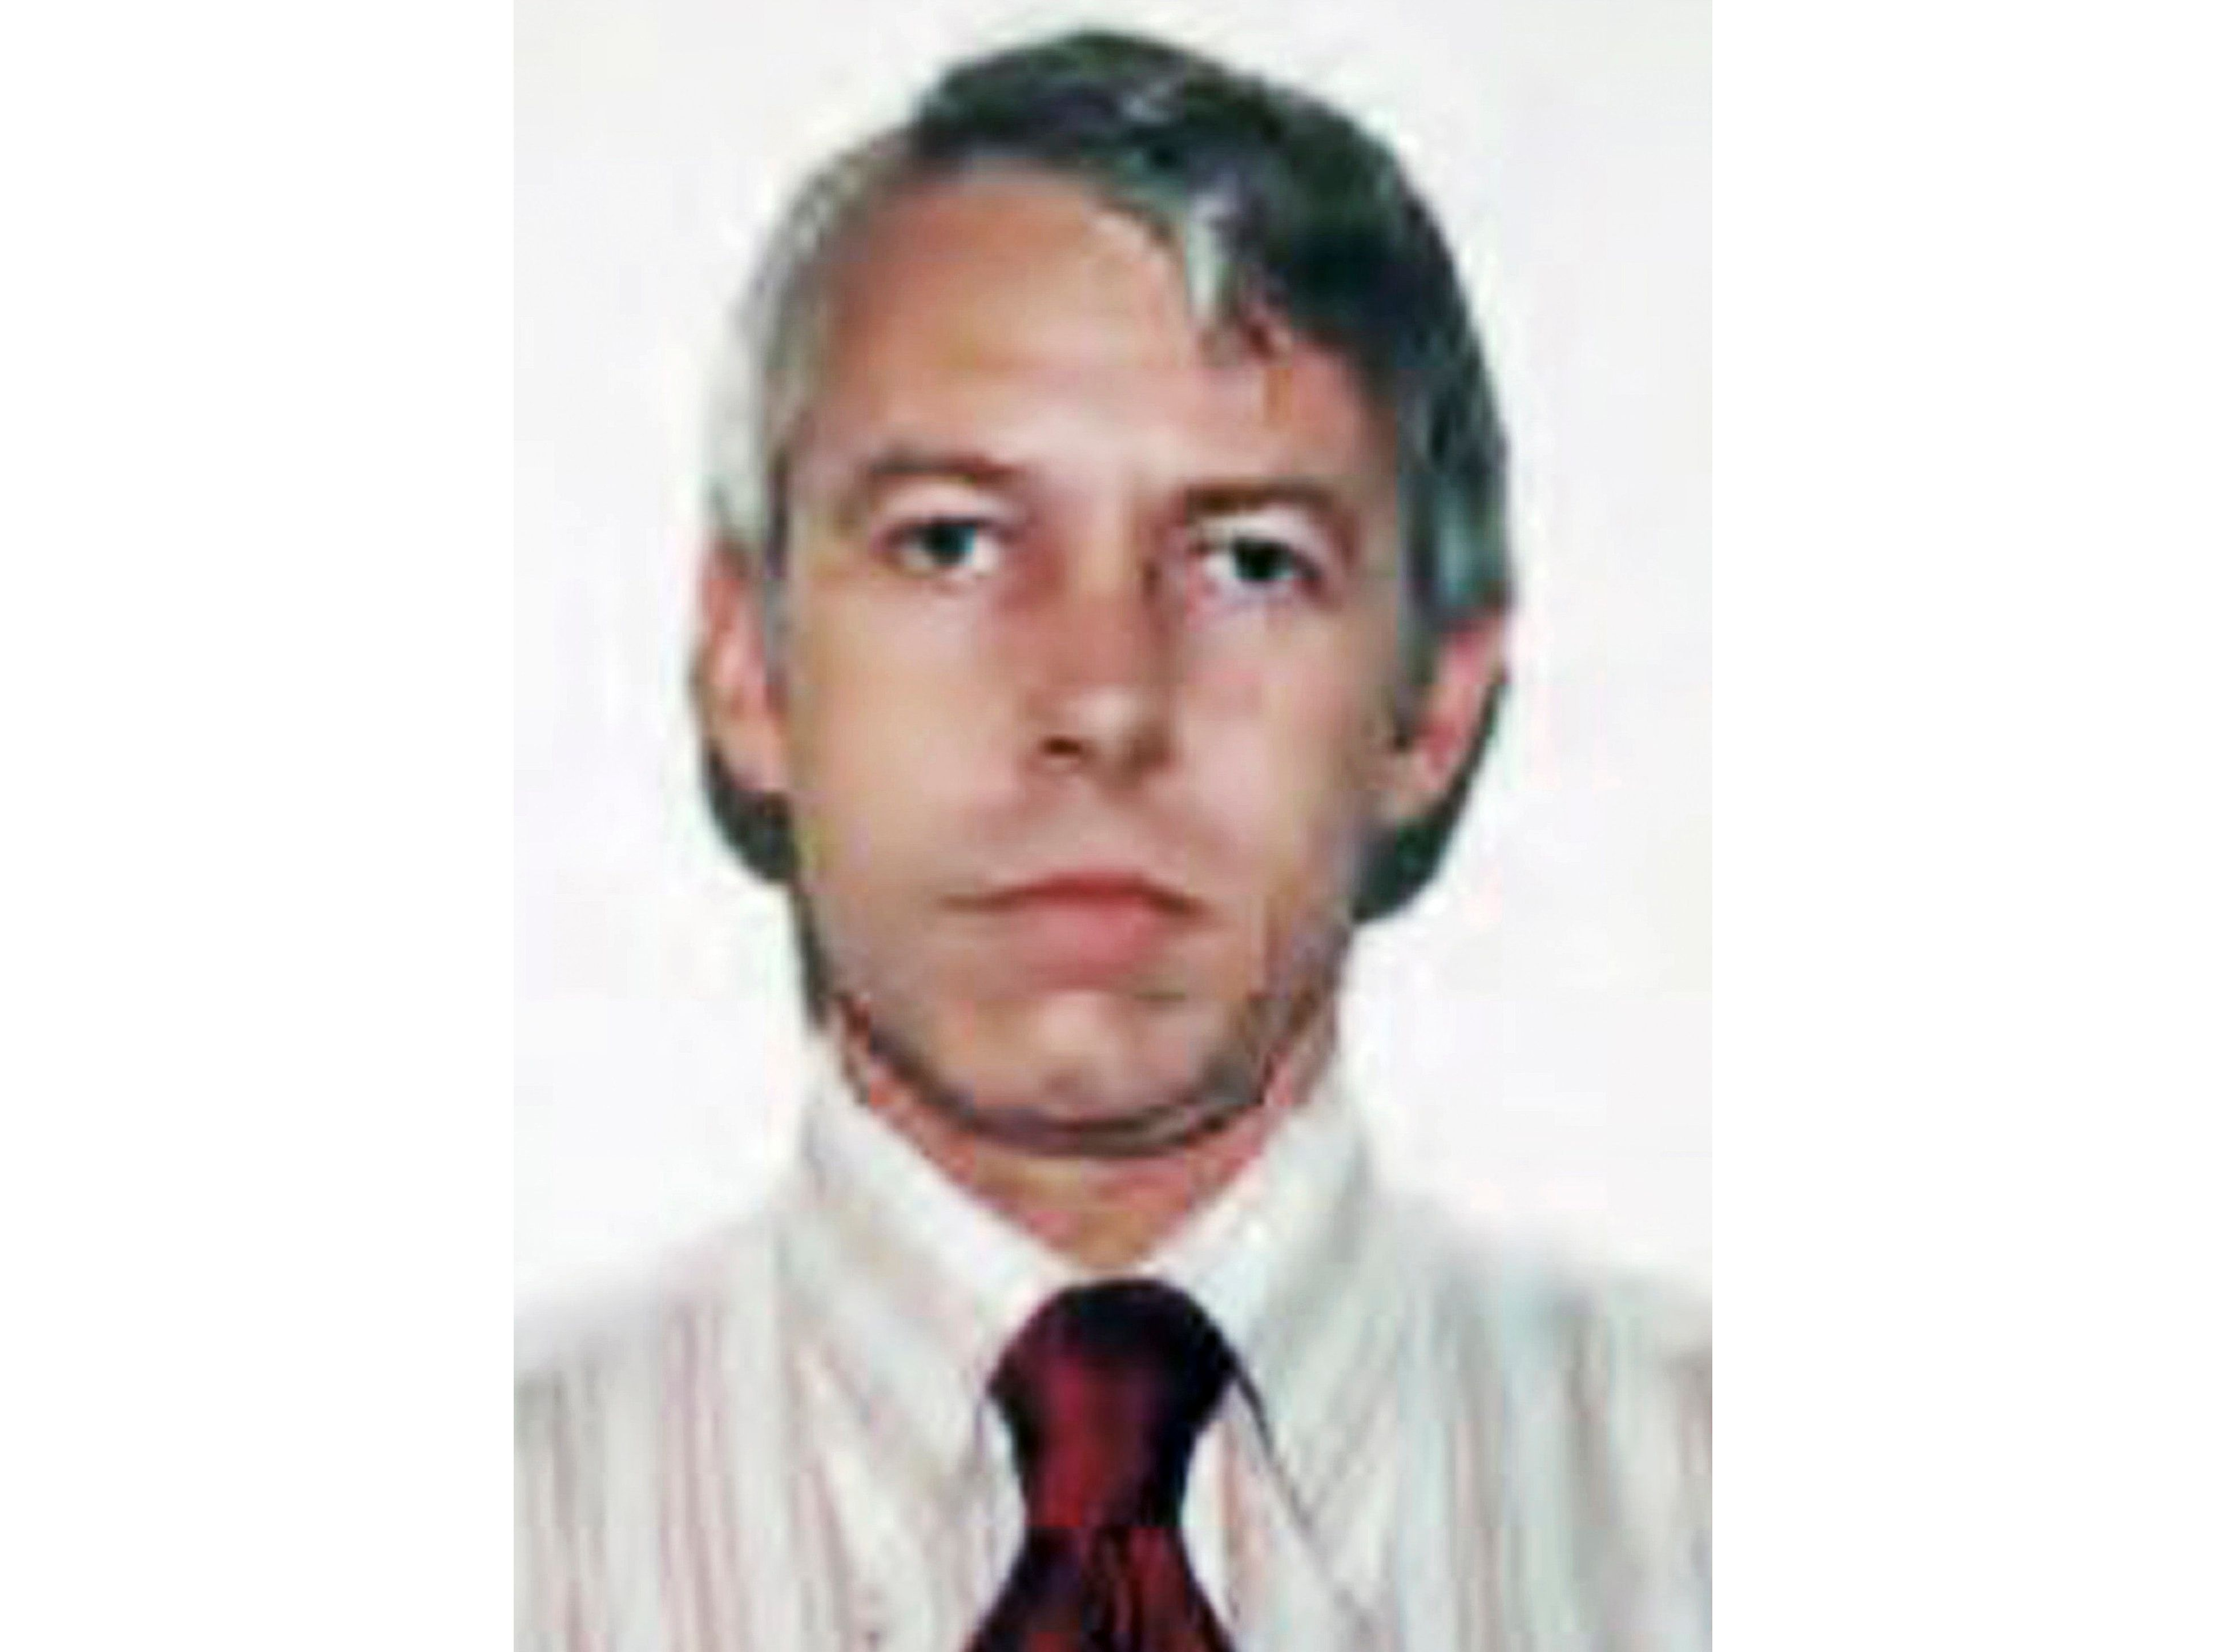 "FILE – This undated file photo shows a photo of Dr. Richard Strauss, an Ohio State University team doctor employed by the school from 1978 until his 1998 retirement.   Federal officials are investigating Ohio State University's response to allegations against Strauss, accused of sexual misconduct against scores of athletes and other male students in the 1980s and 1990s. The U.S. Department of Education Office for Civil Rights will examine whether Ohio State has responded ""promptly and equitably"" to students' complaints, including claims that school officials knew about misconduct by Dr. Richard Strauss but didn't stop him, the school said Thursday, Aug. 16, 2018. That office oversees enforcement of a federal law that bars sex discrimination in education.(Ohio State University via AP, File)"